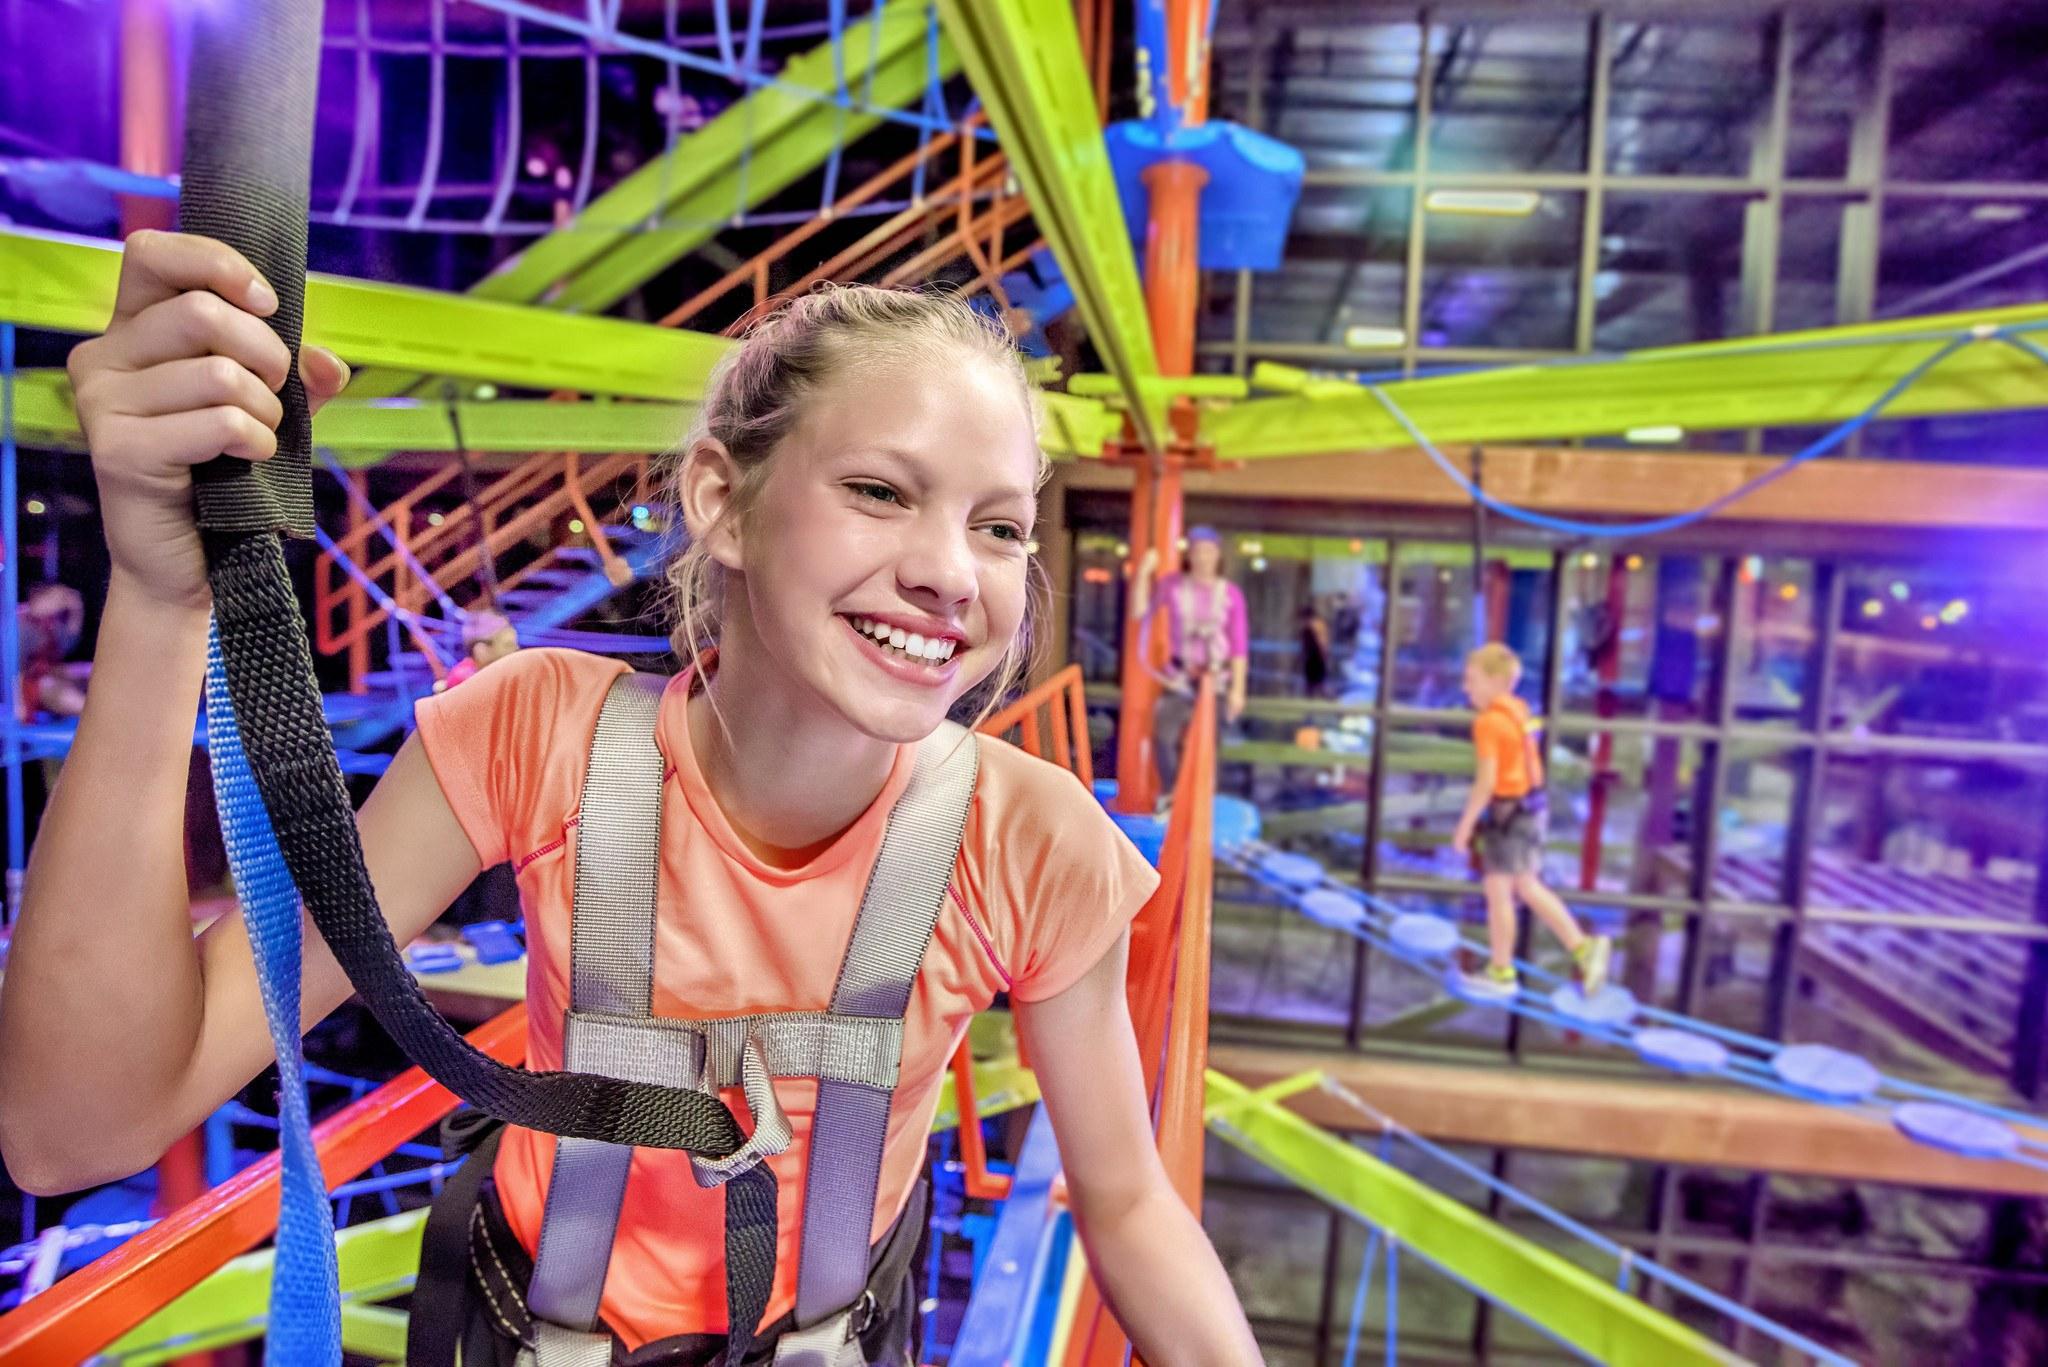 Fritzs Adventure is a fun thing to do with kids in Branson, Missouri